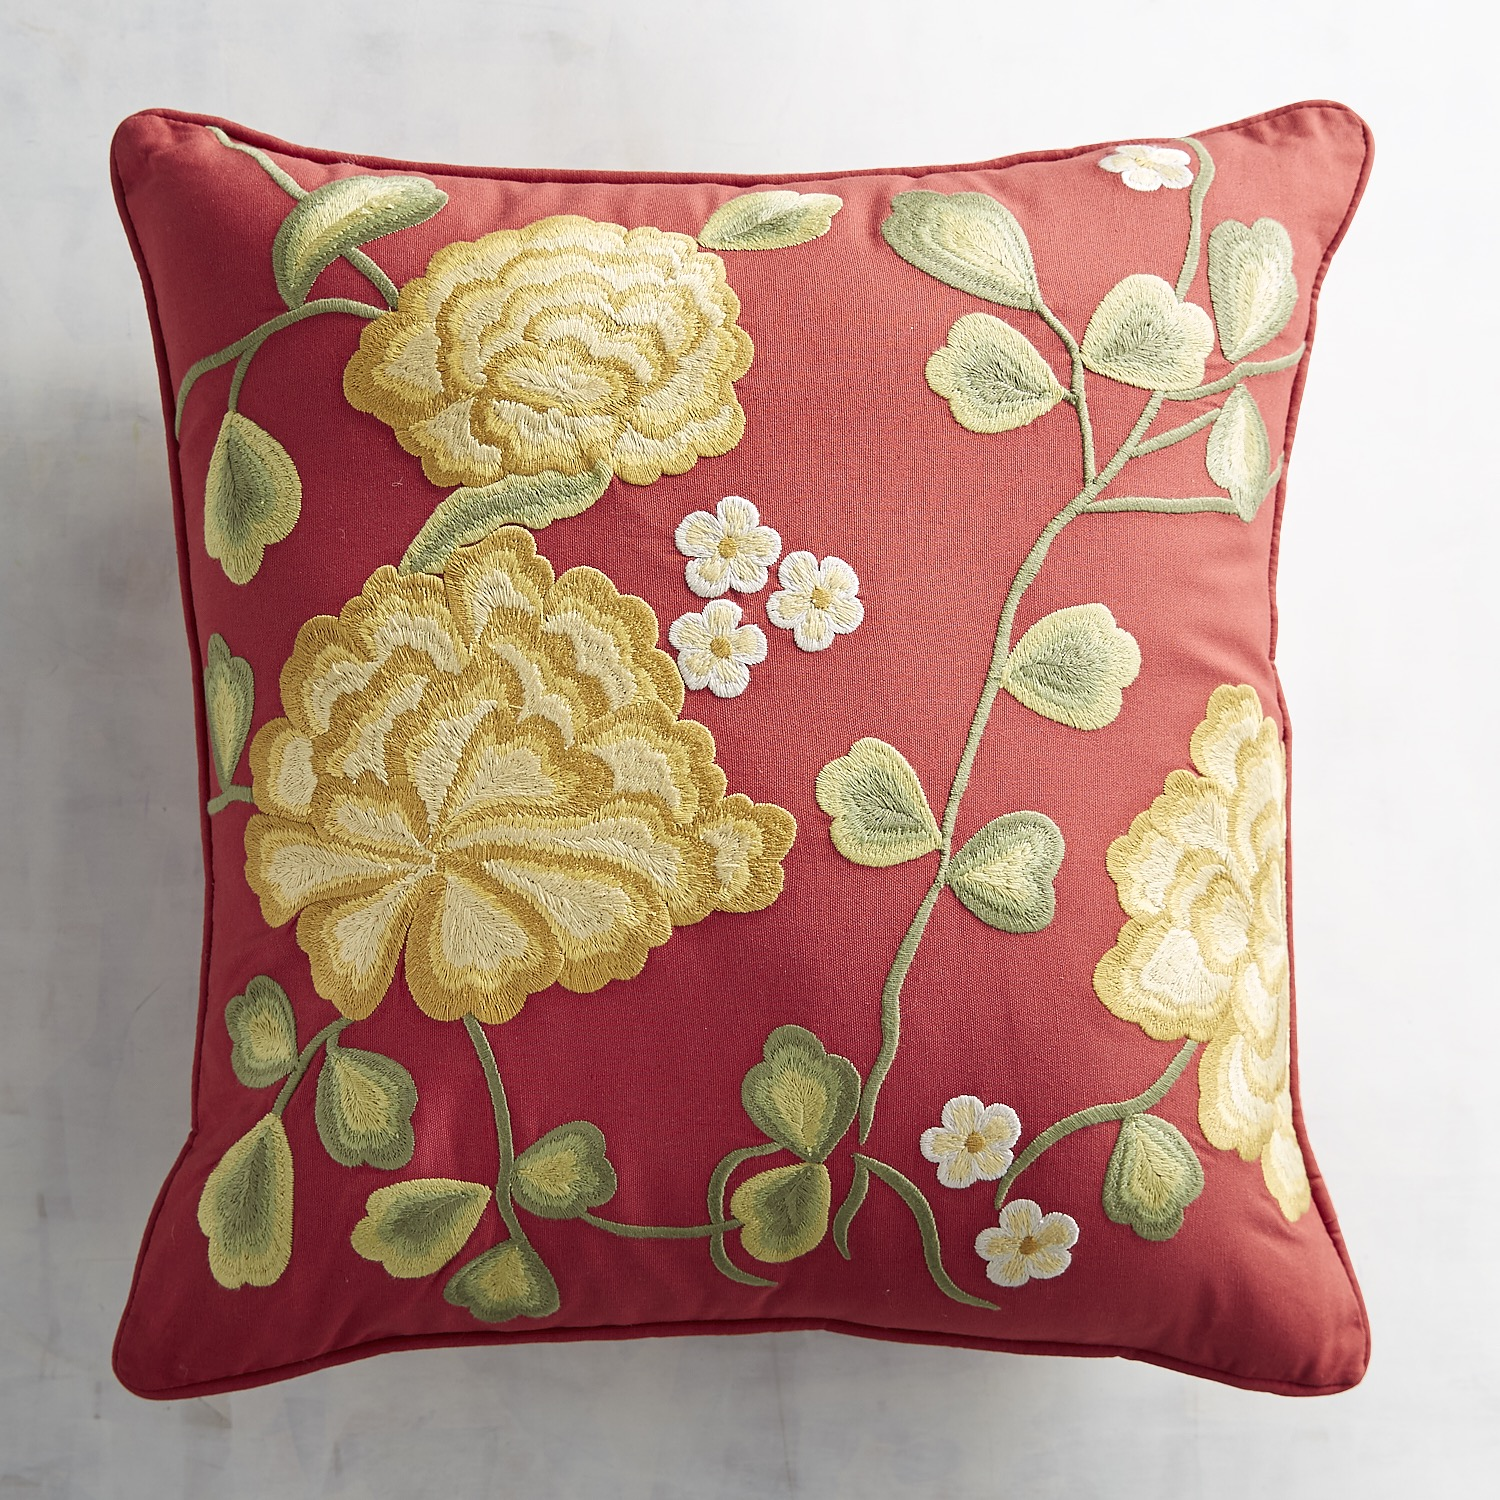 Embroidered Marigolds Pillow